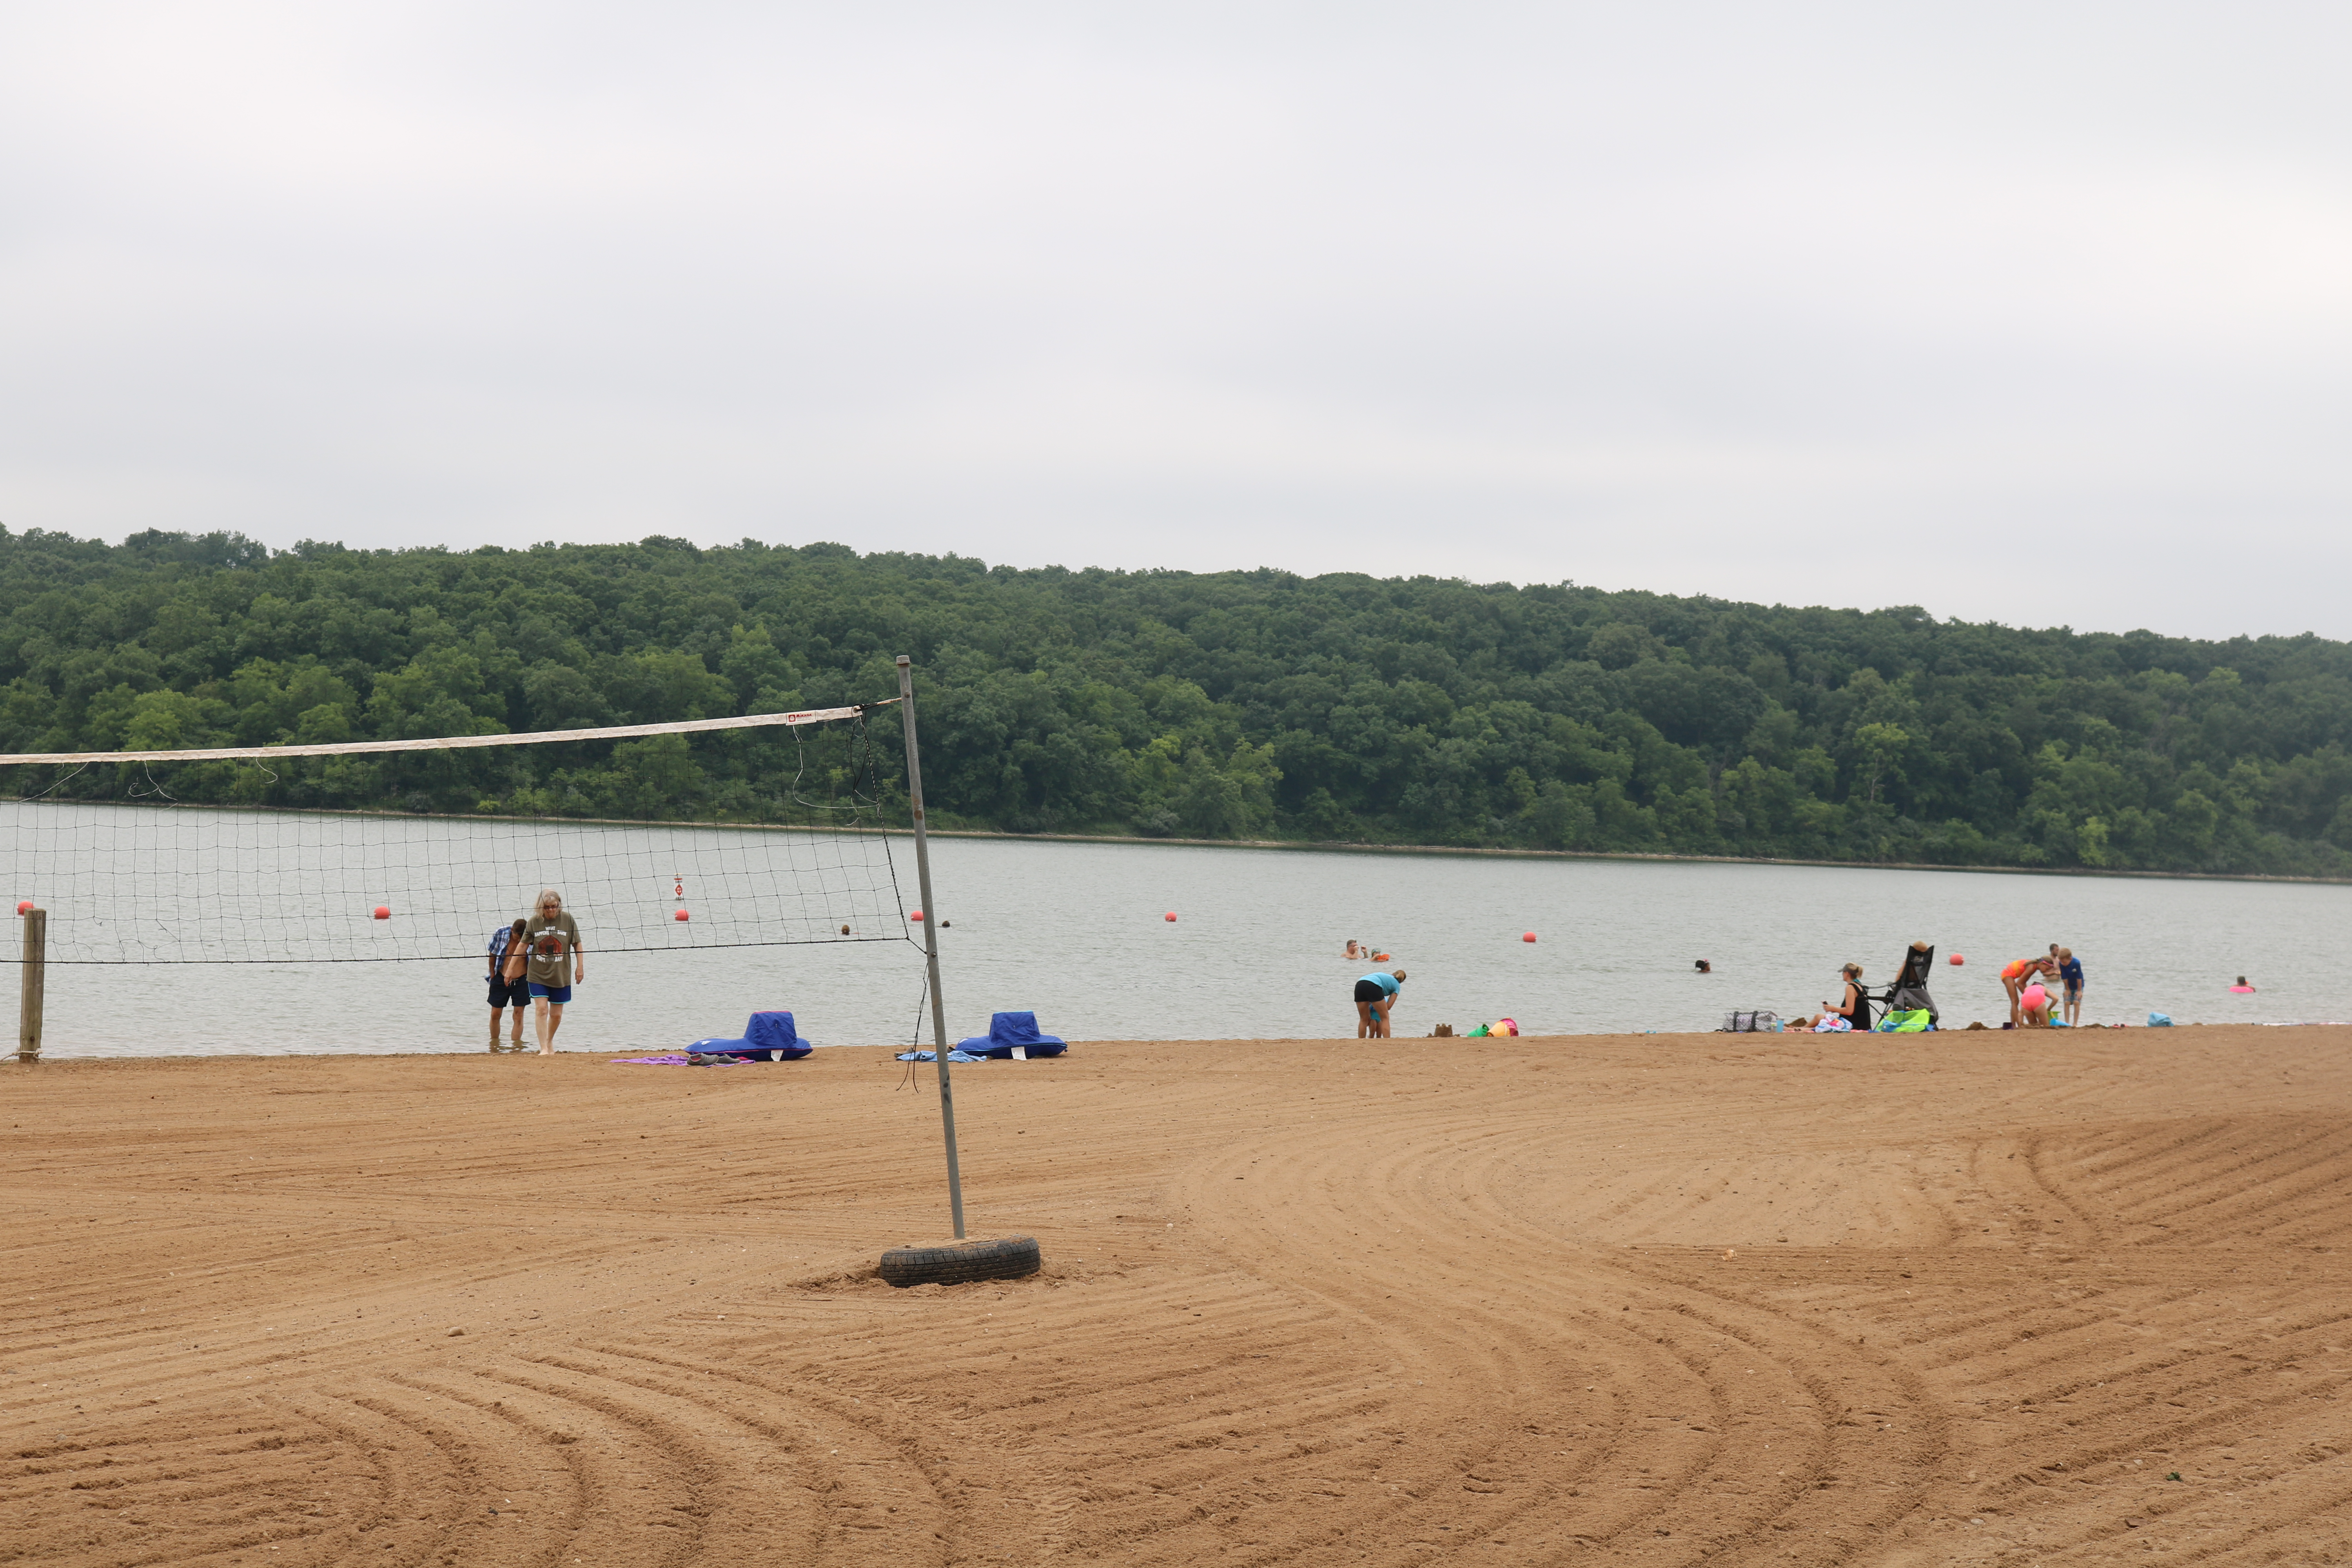 a volleyball net and people swimming in the lake